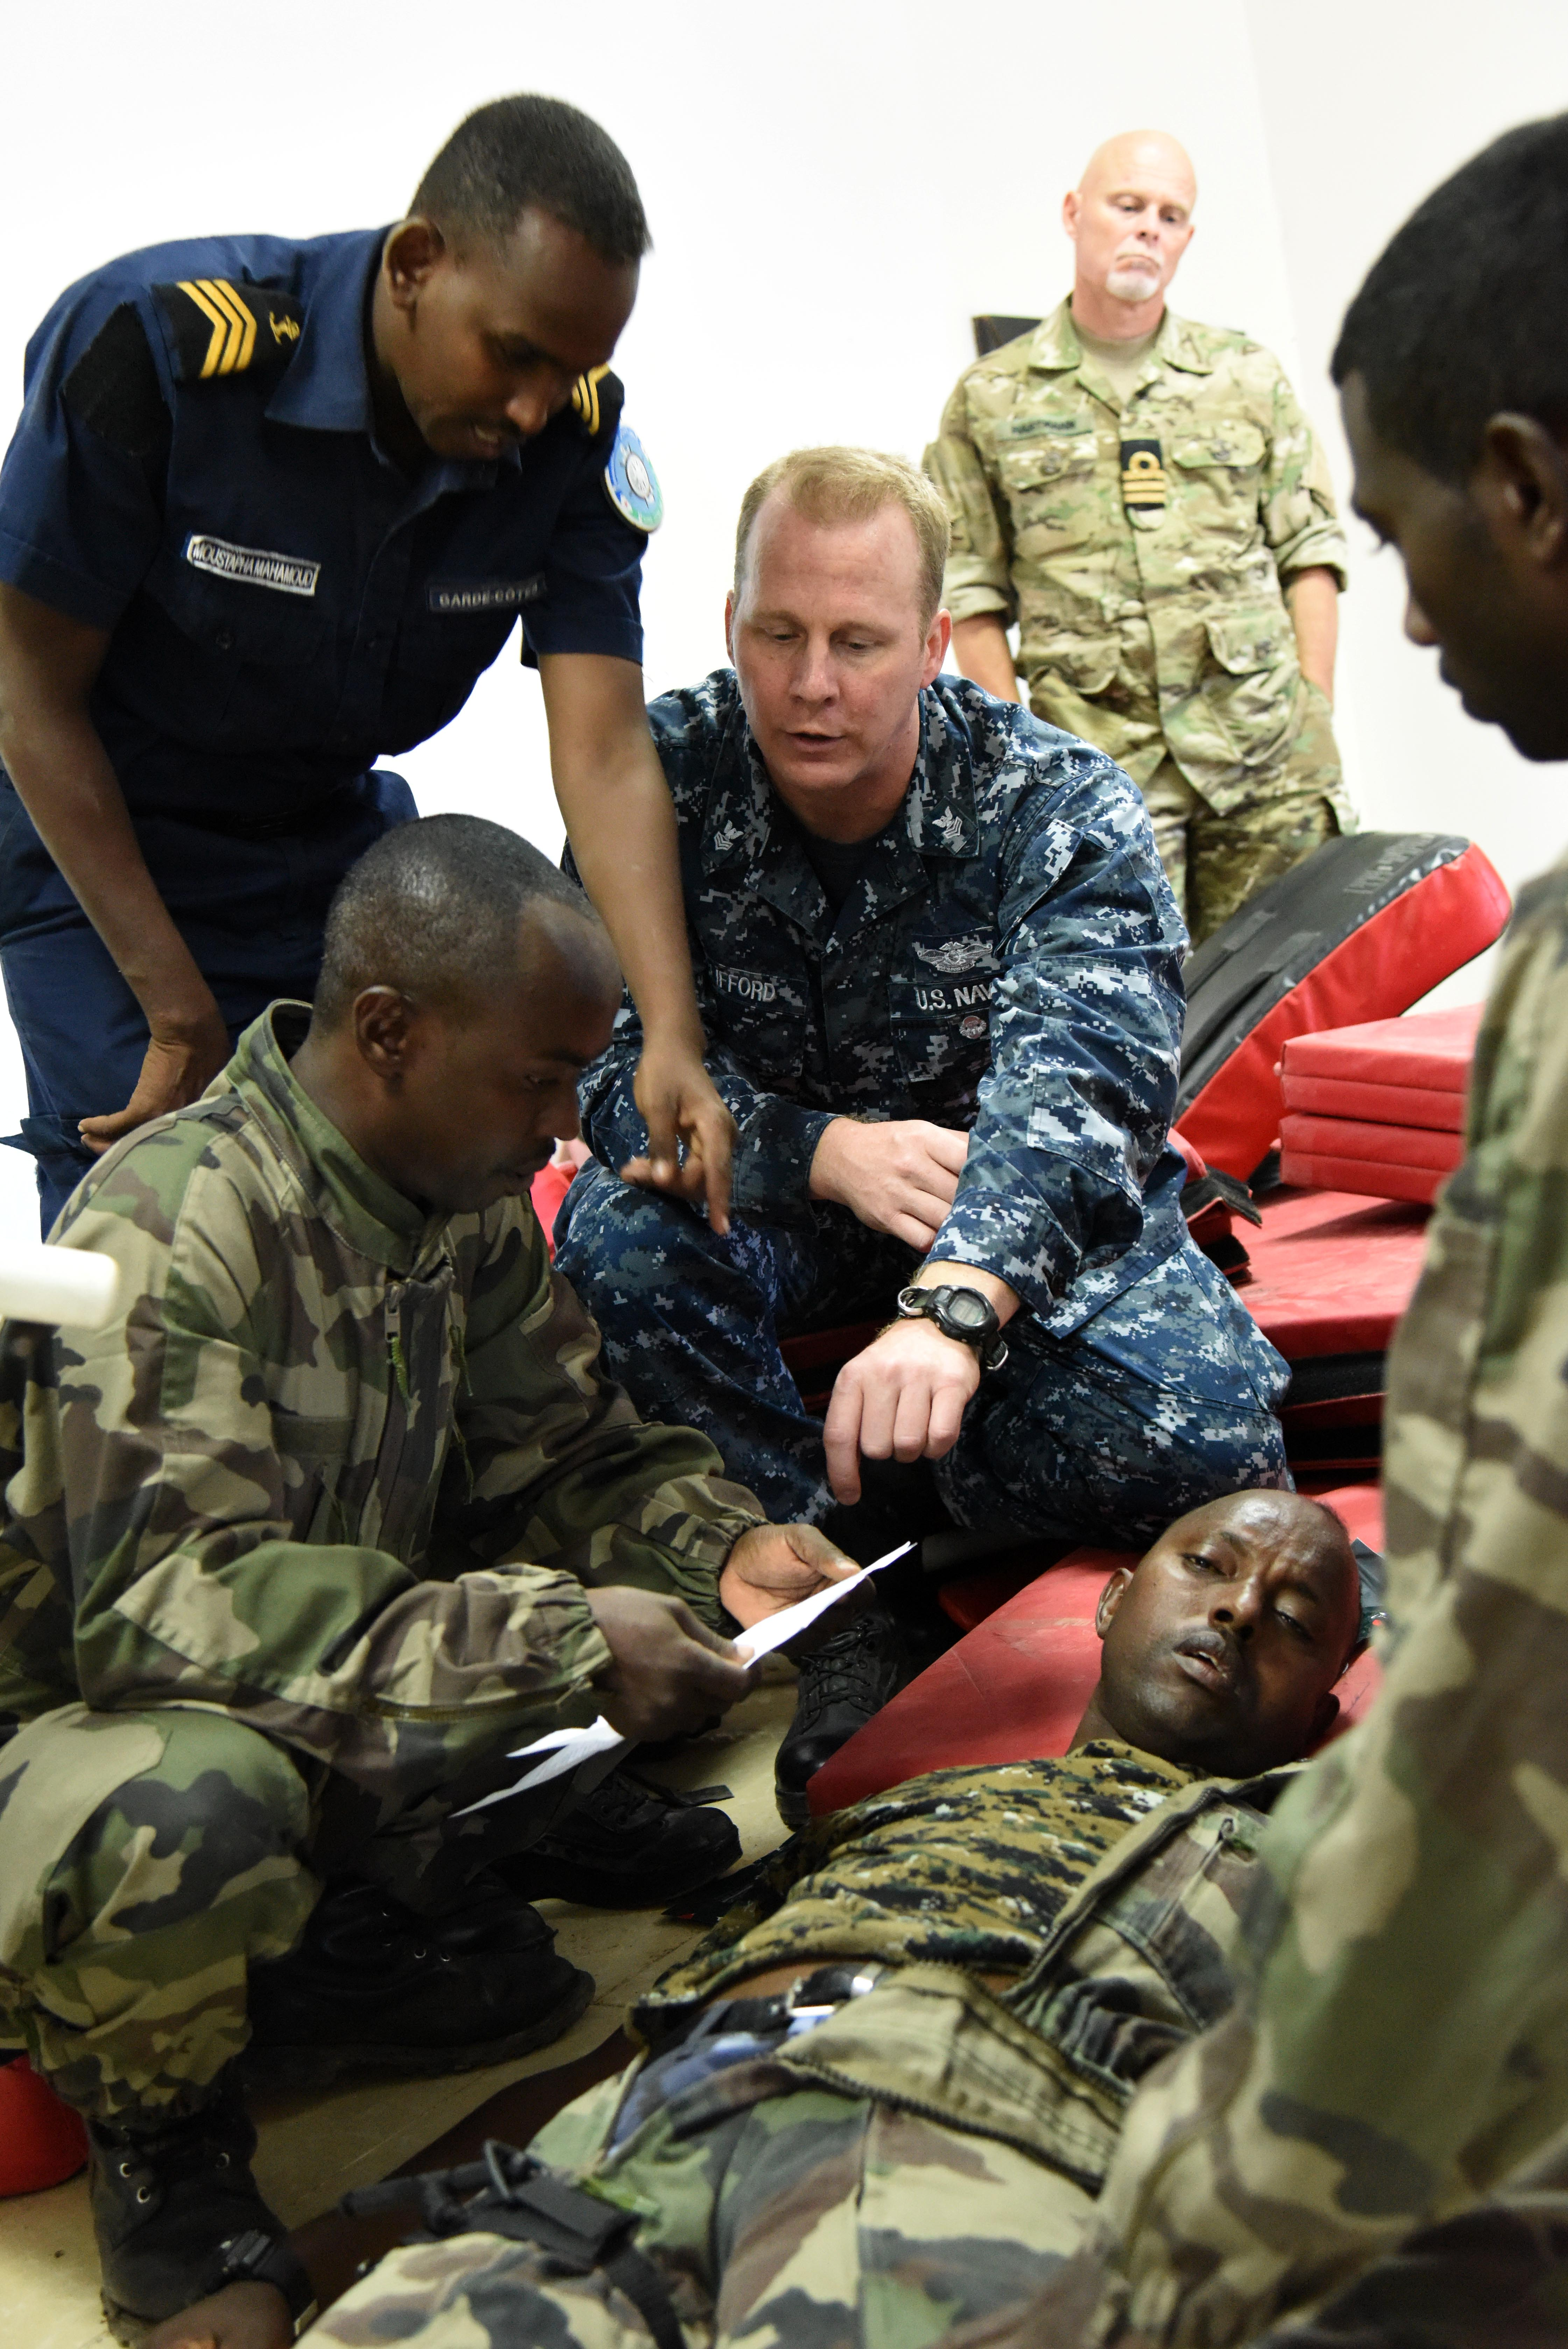 U.S. Navy Hospital Corpsman First Class Aaron Clifford, Cutlass Express medical instructor, explains how to treat a sucking chest wound on a simulated patient to Djibouti Coast Guardsmen and Marines during classroom instruction for exercise Cutlass Express Jan. 31, 2016, at the Djiboutian Coast Guard Academy, Djibouti. Exercise participants conducted a number of maritime security operations to include vessel queries, ship boarding, airborne maritime patrol operations, and search and rescue drills.